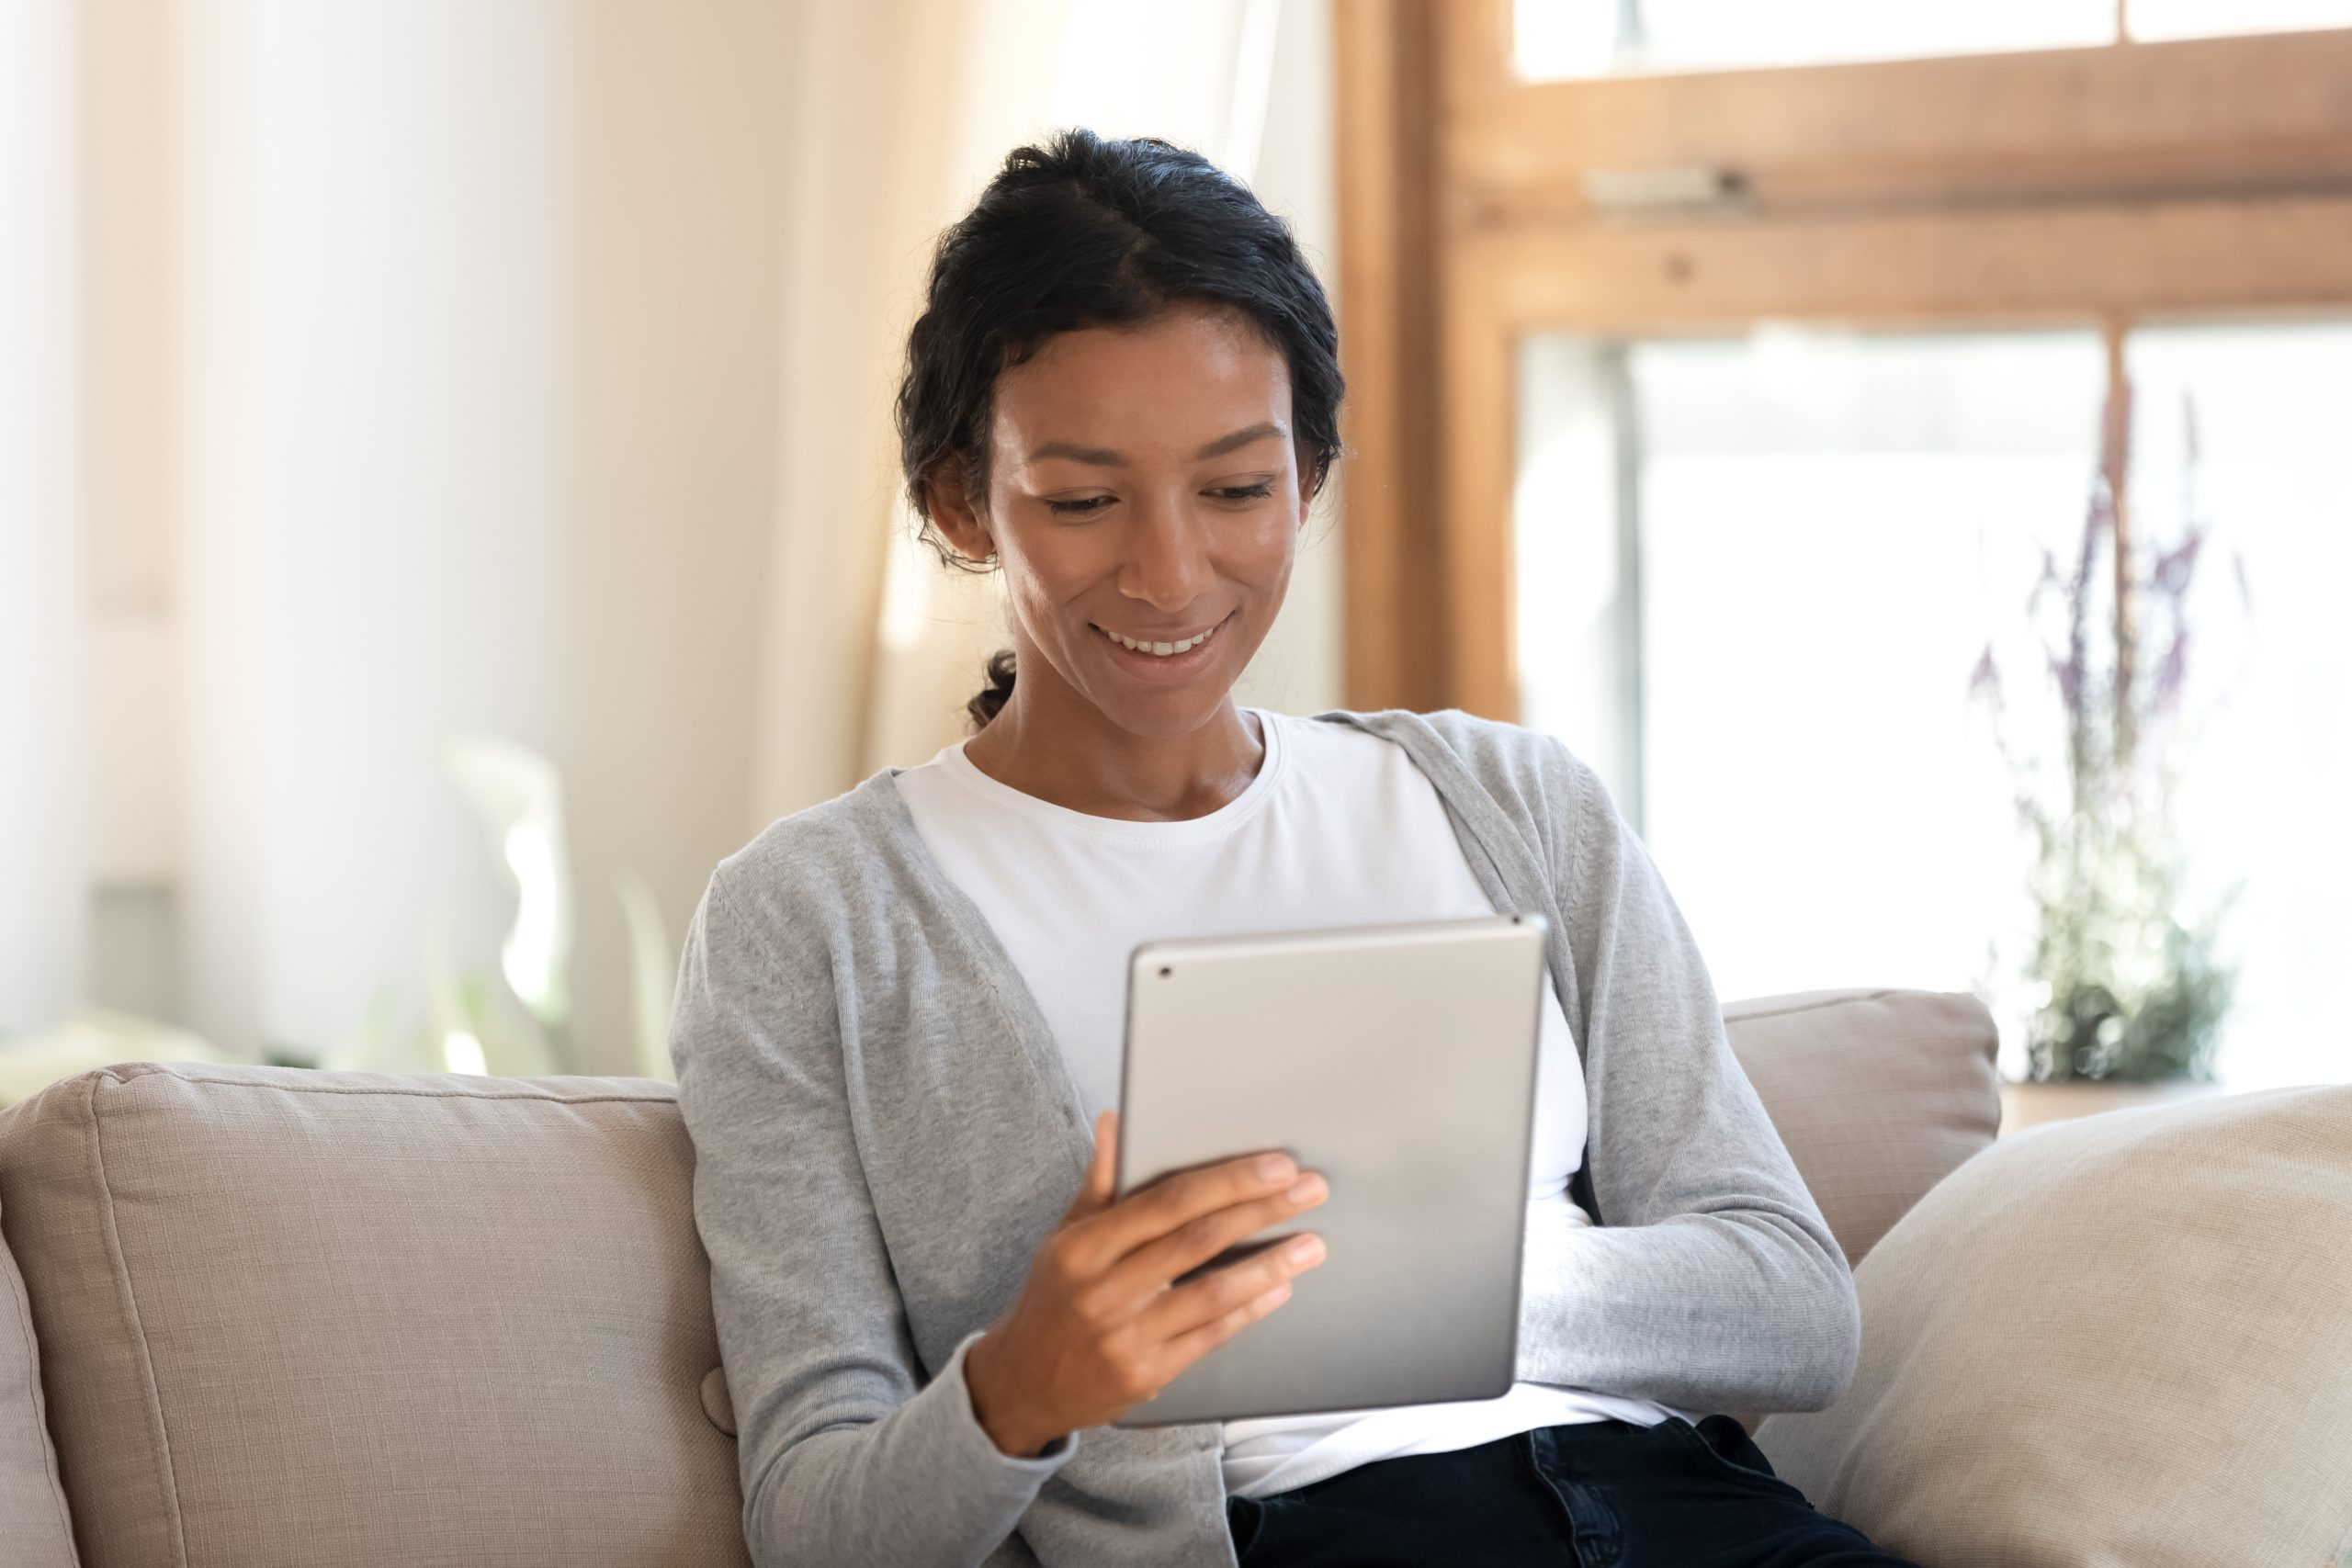 Smiling biracial young female sit relax on sofa at home browsing wireless Internet on tablet, happy African American millennial woman rest on couch in living room watch video or surfing on pad gadget